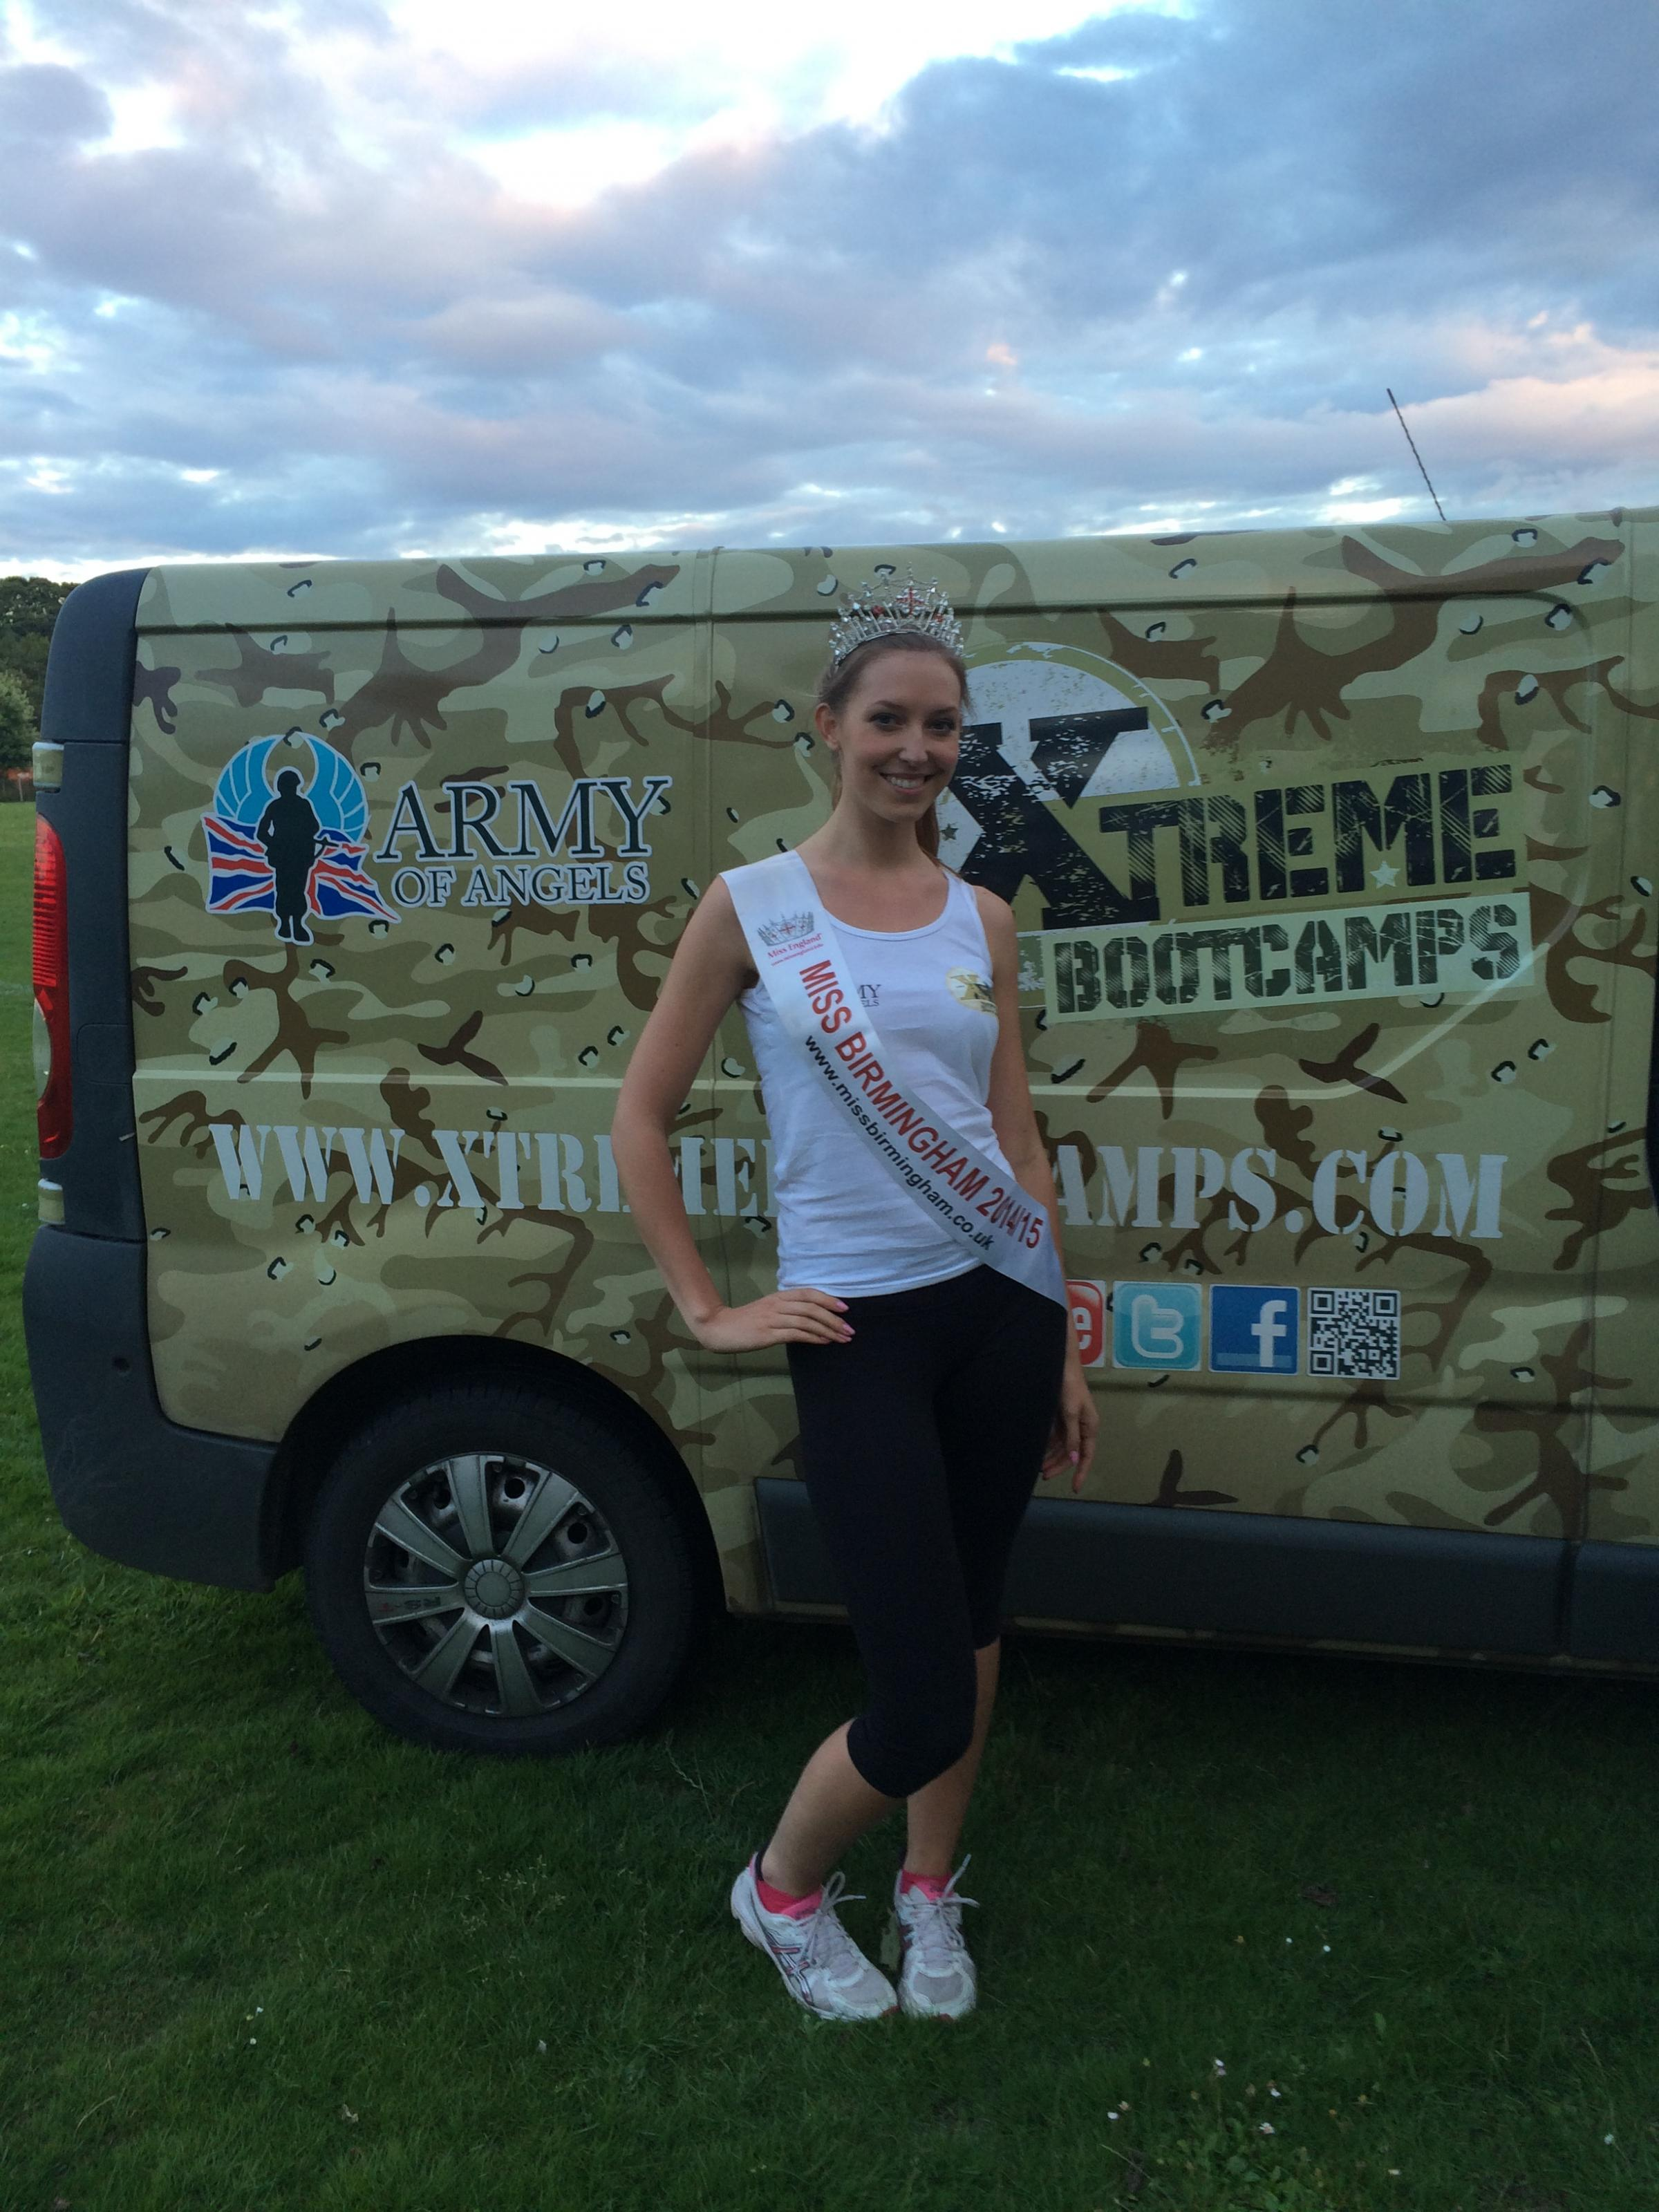 Miss Birmingham, Katie Stamp, is getting race ready with a Worcester boot camp.